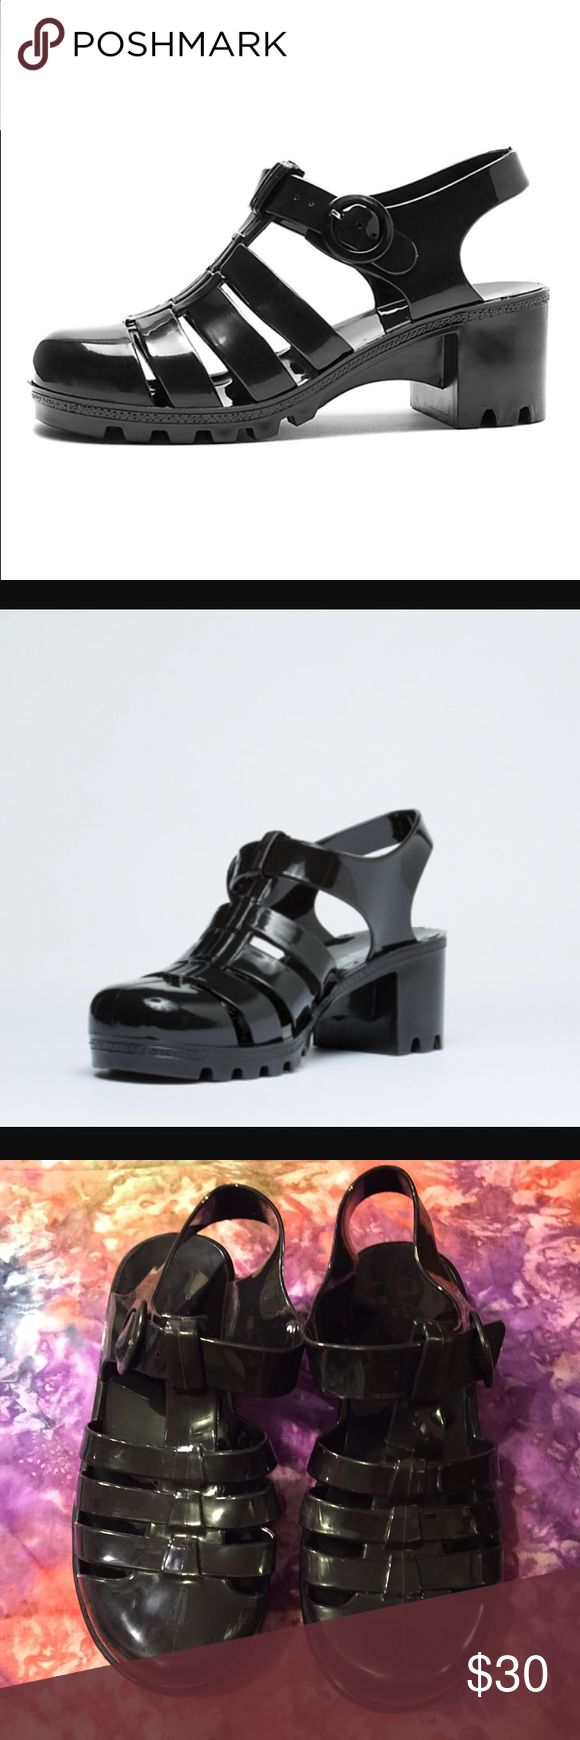 American Apparel Jelly Shoes! Brand new condition black jelly heels from American Apparel! Cute for fall with socks or tights! American Apparel Shoes Sandals